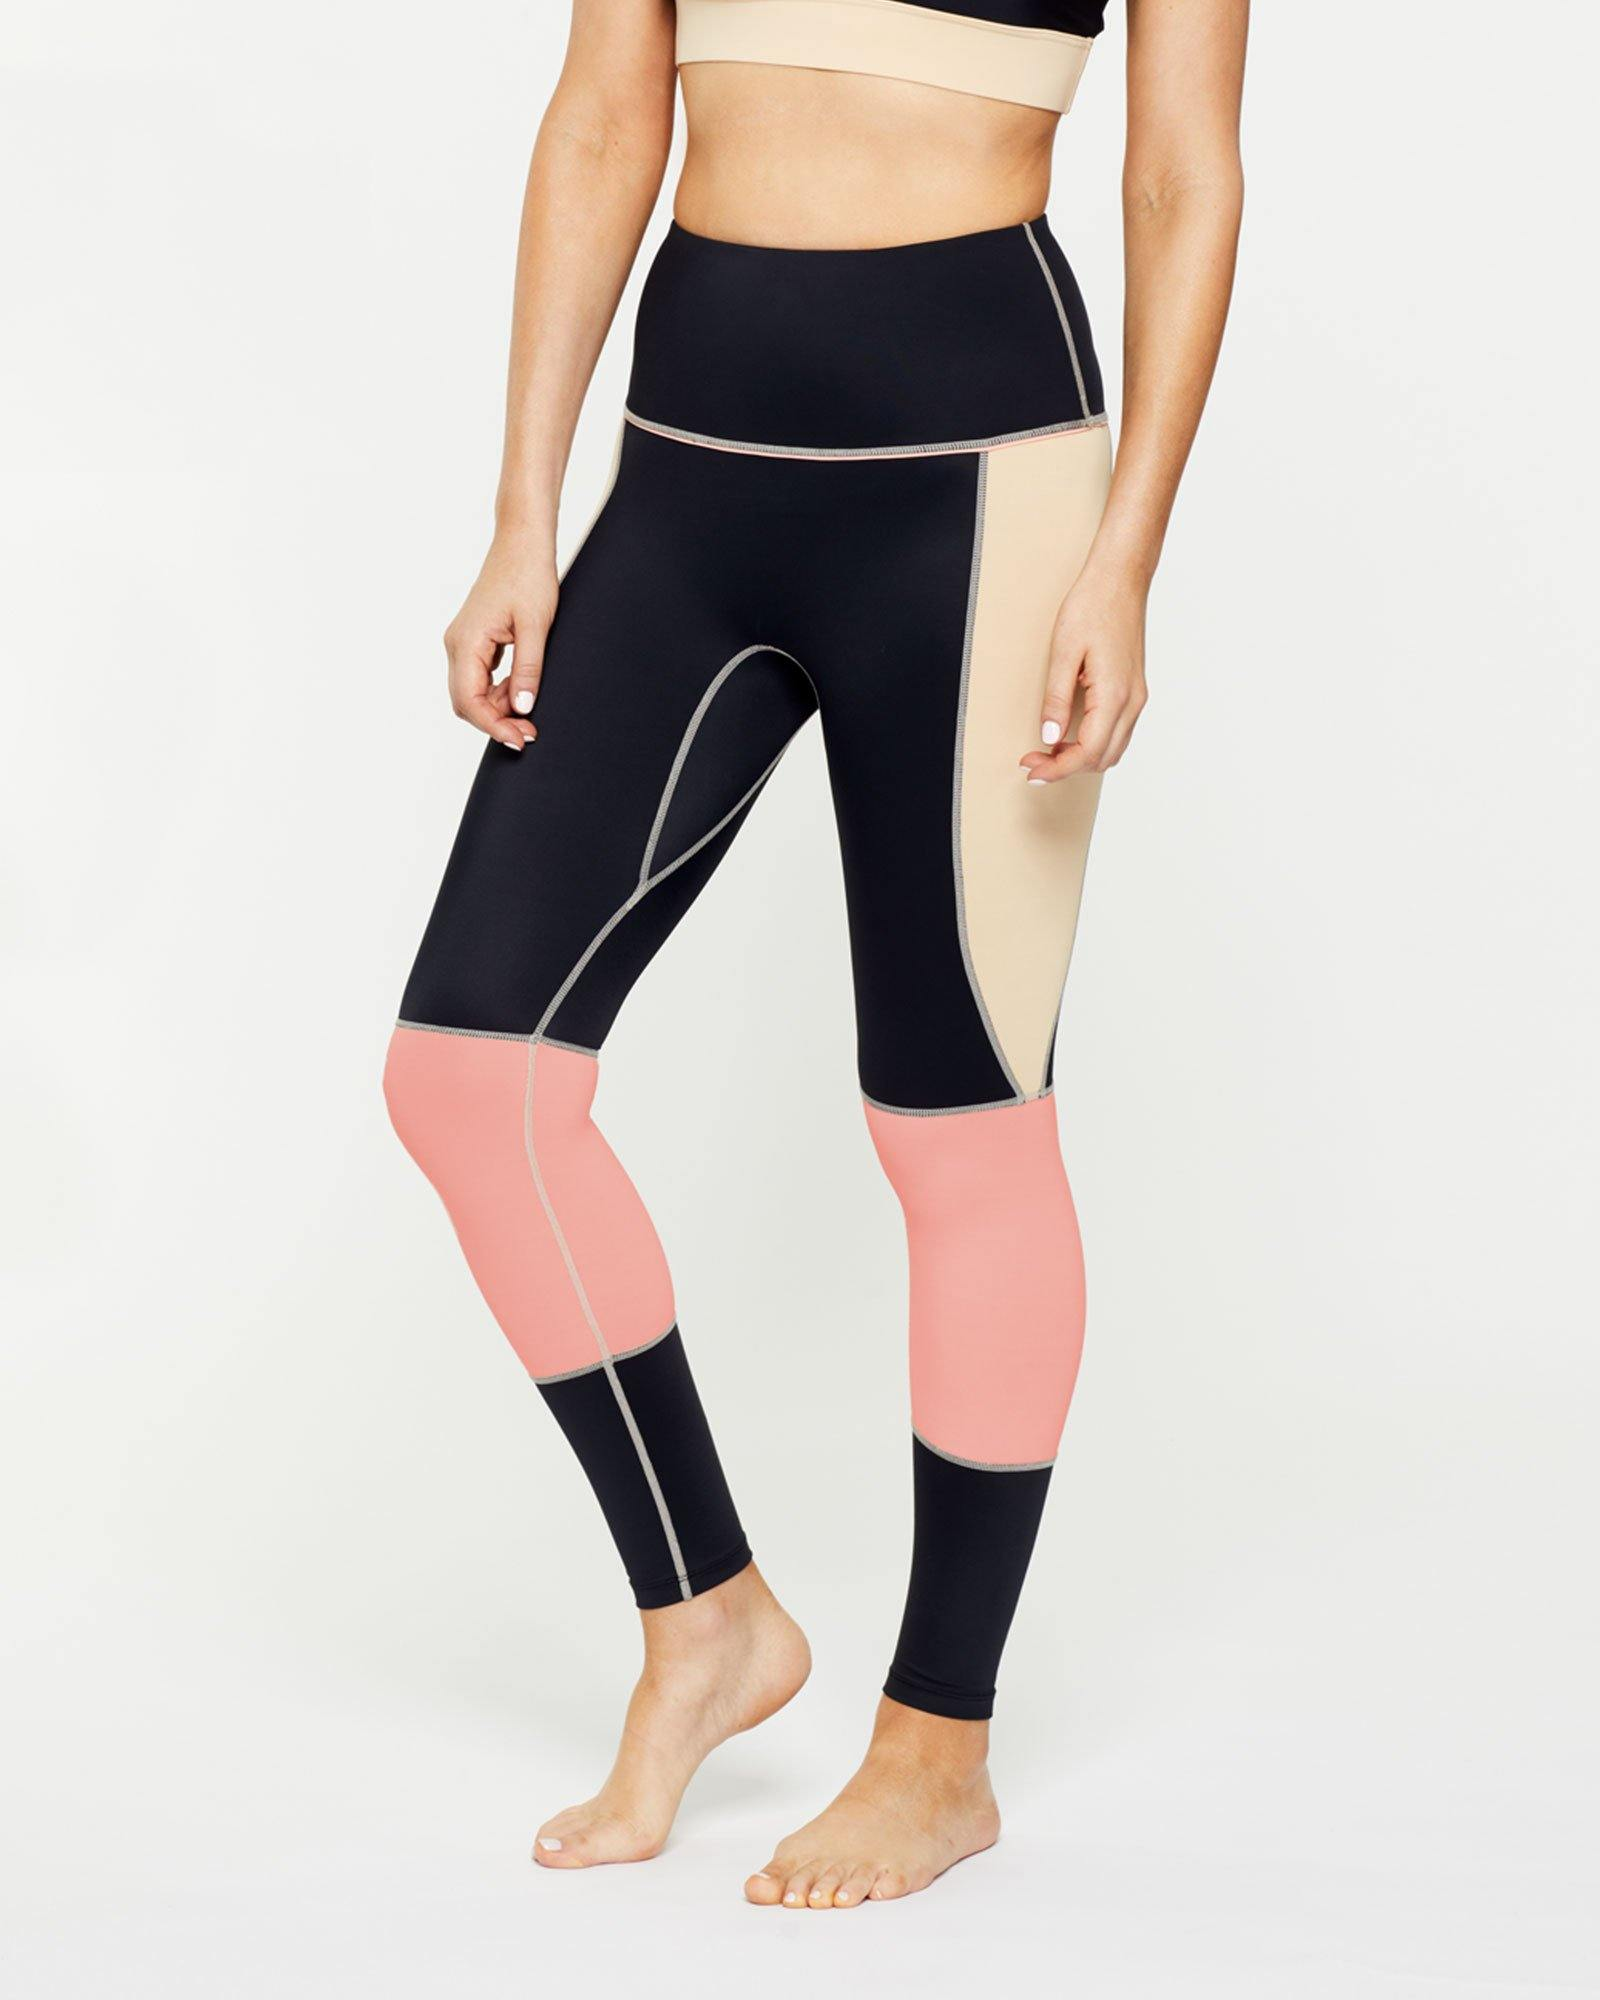 Warrior GRACILIS 7/8 HIGH WAISTED LEGGING BLACK WITH CONTRAST PANELS, SIDE VIEW